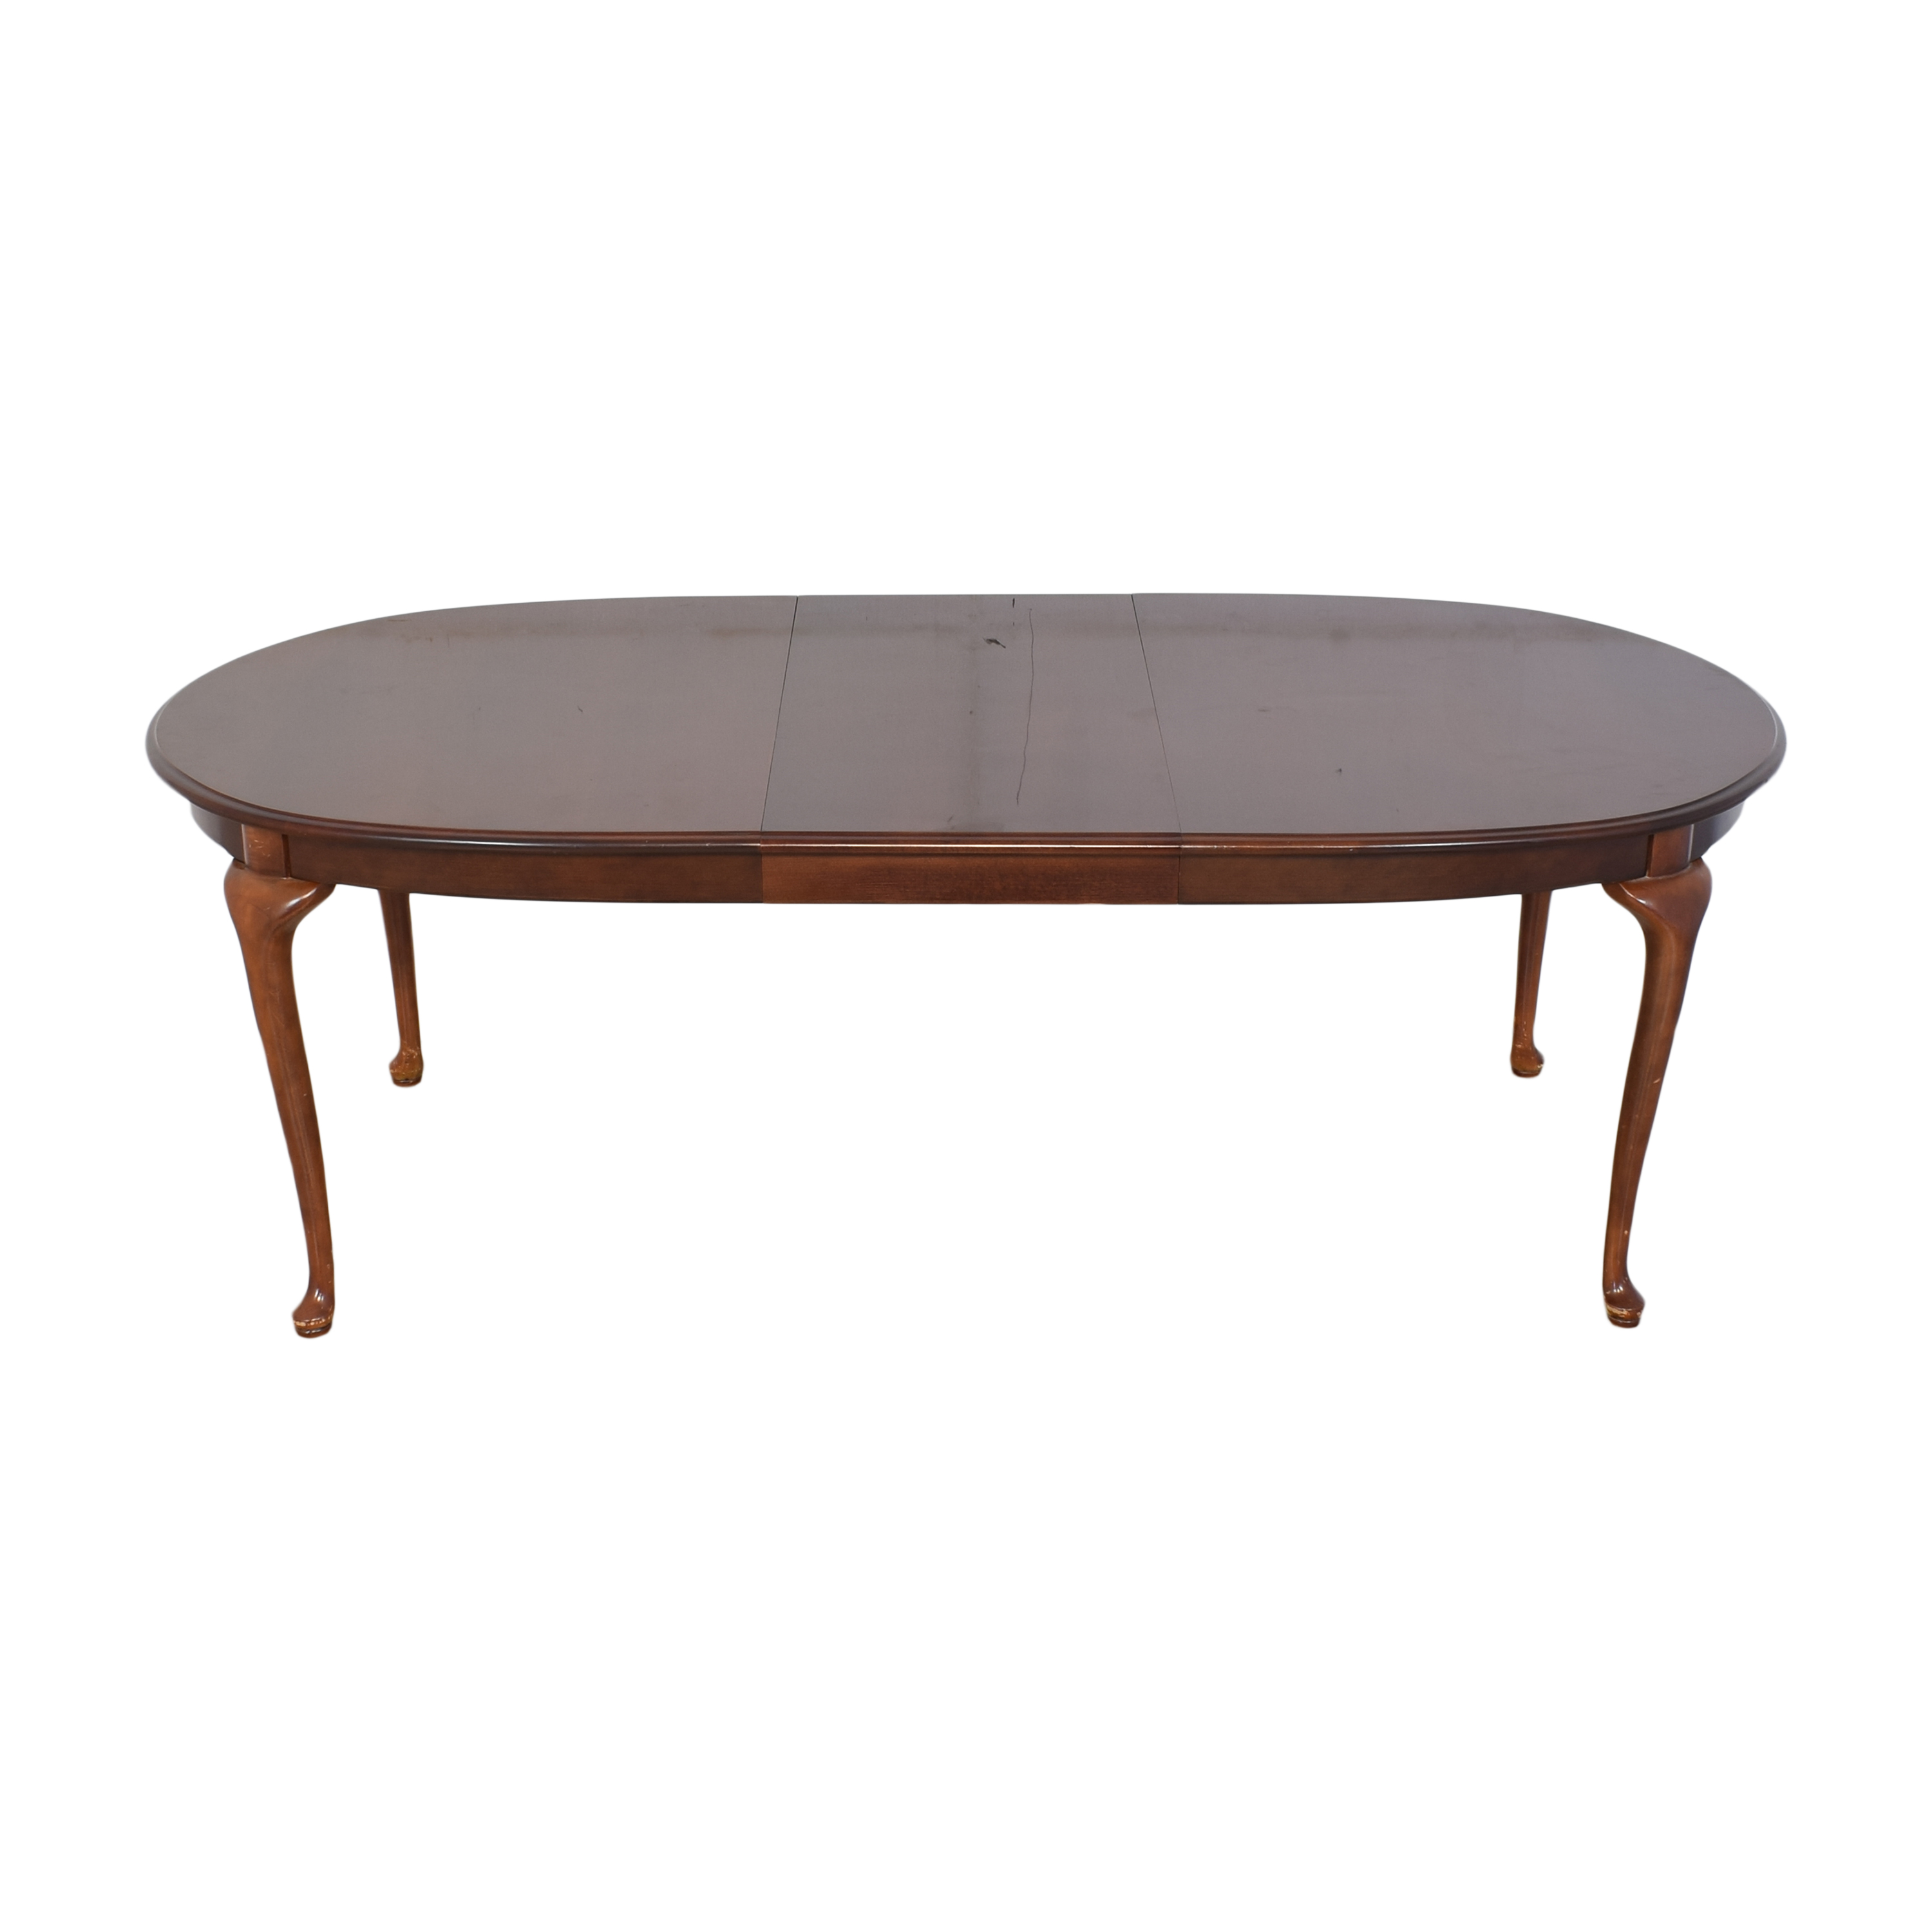 Thomasville Thomasville Extending Dining Table for sale